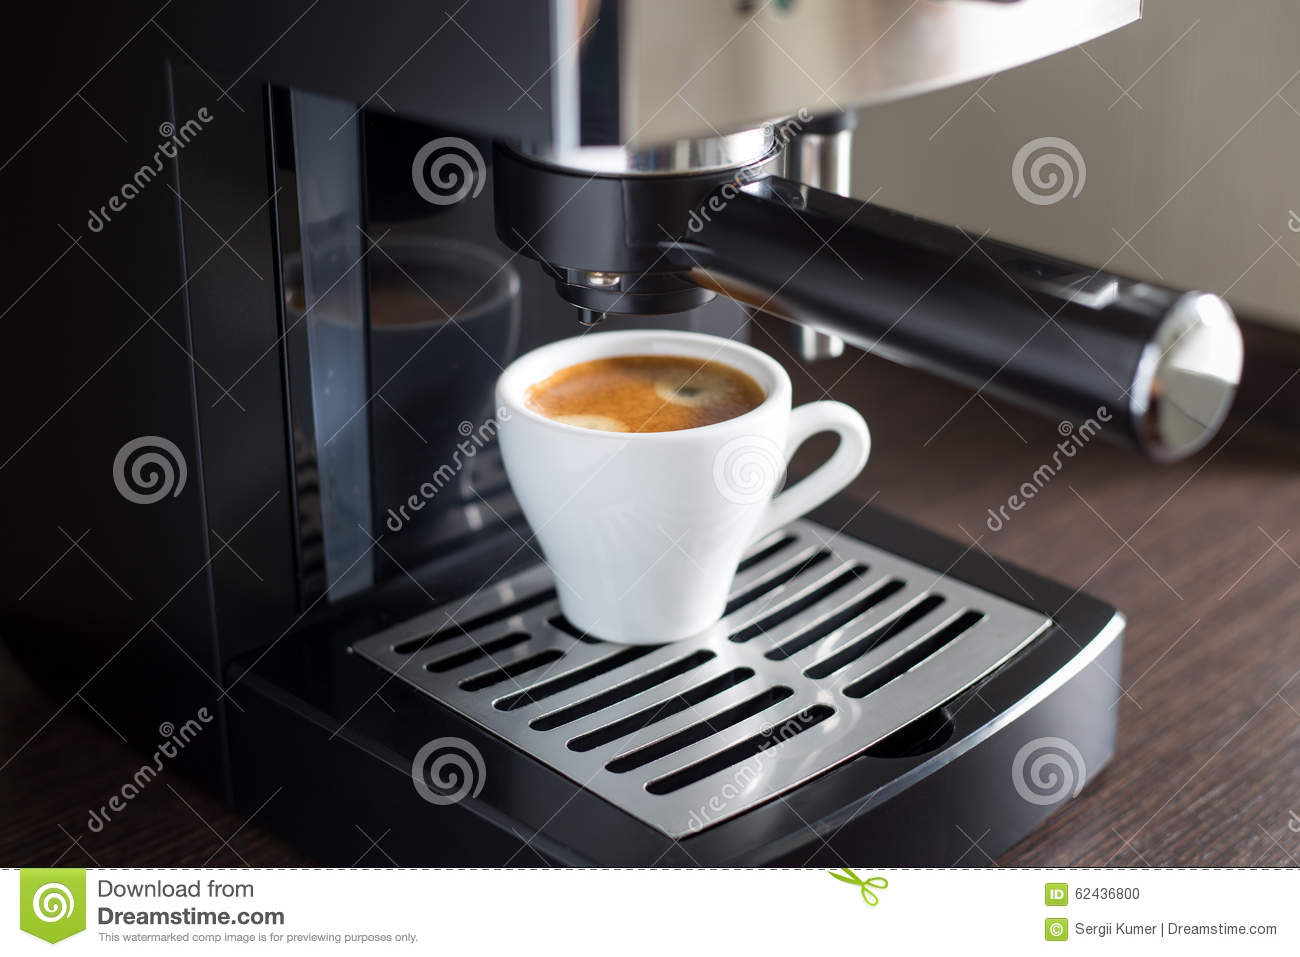 espresso machine and cup of coffee stock photography 23022764. Black Bedroom Furniture Sets. Home Design Ideas